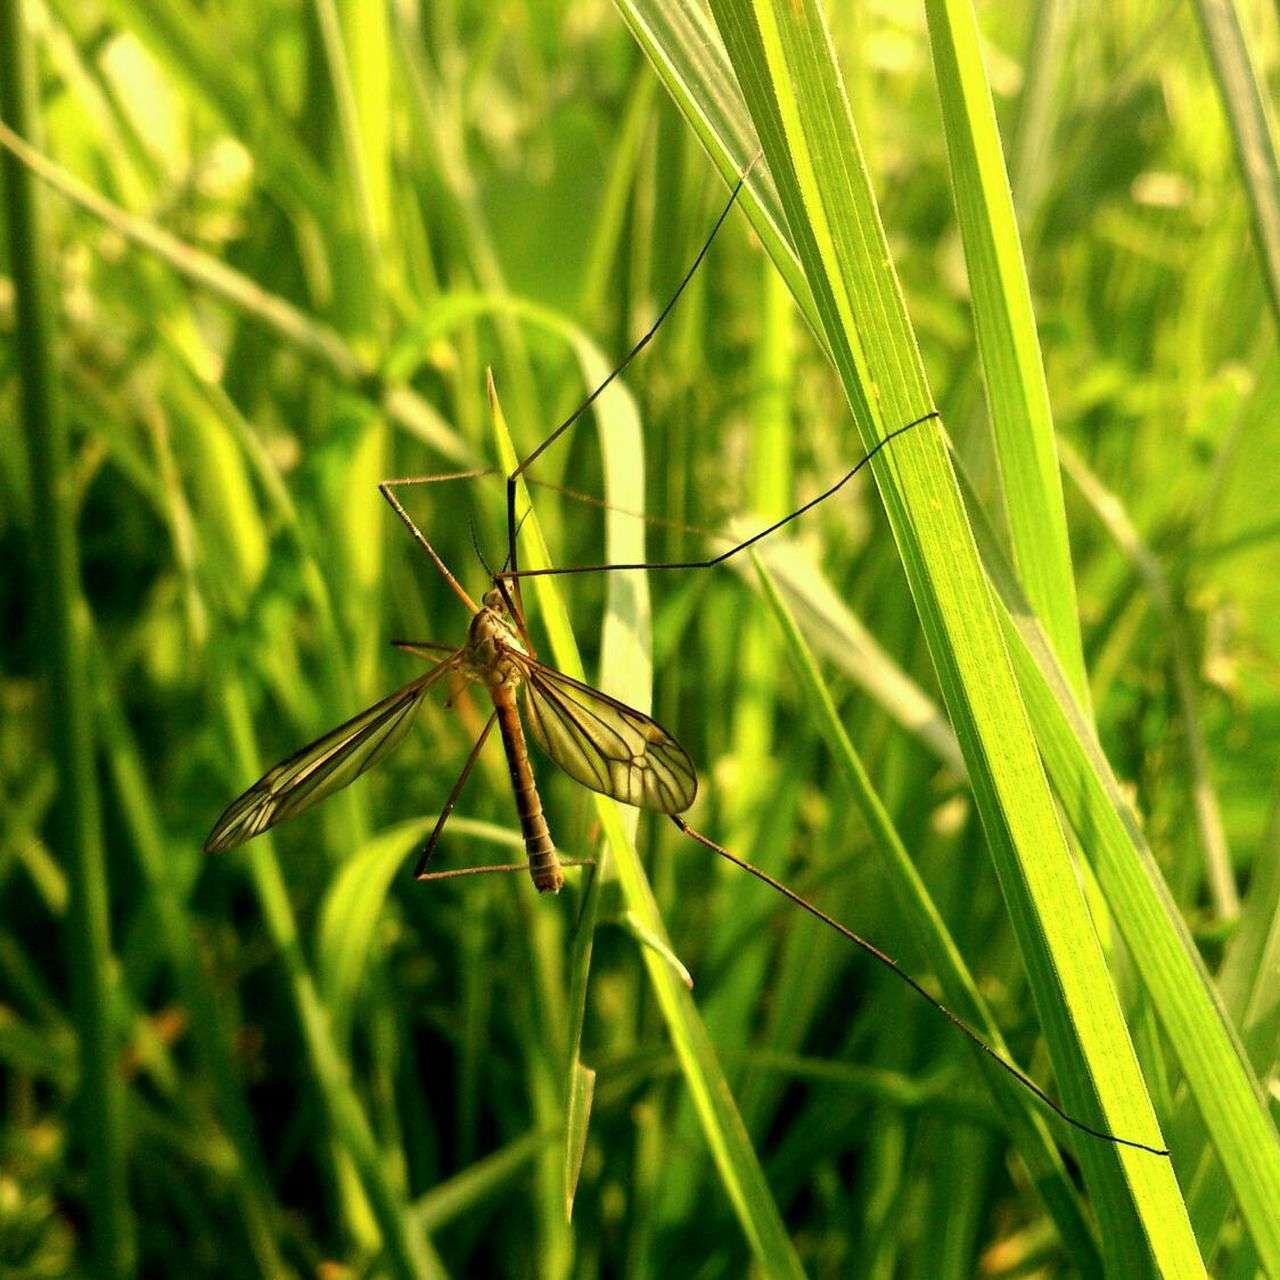 Close-up of mosquito on blade of grass